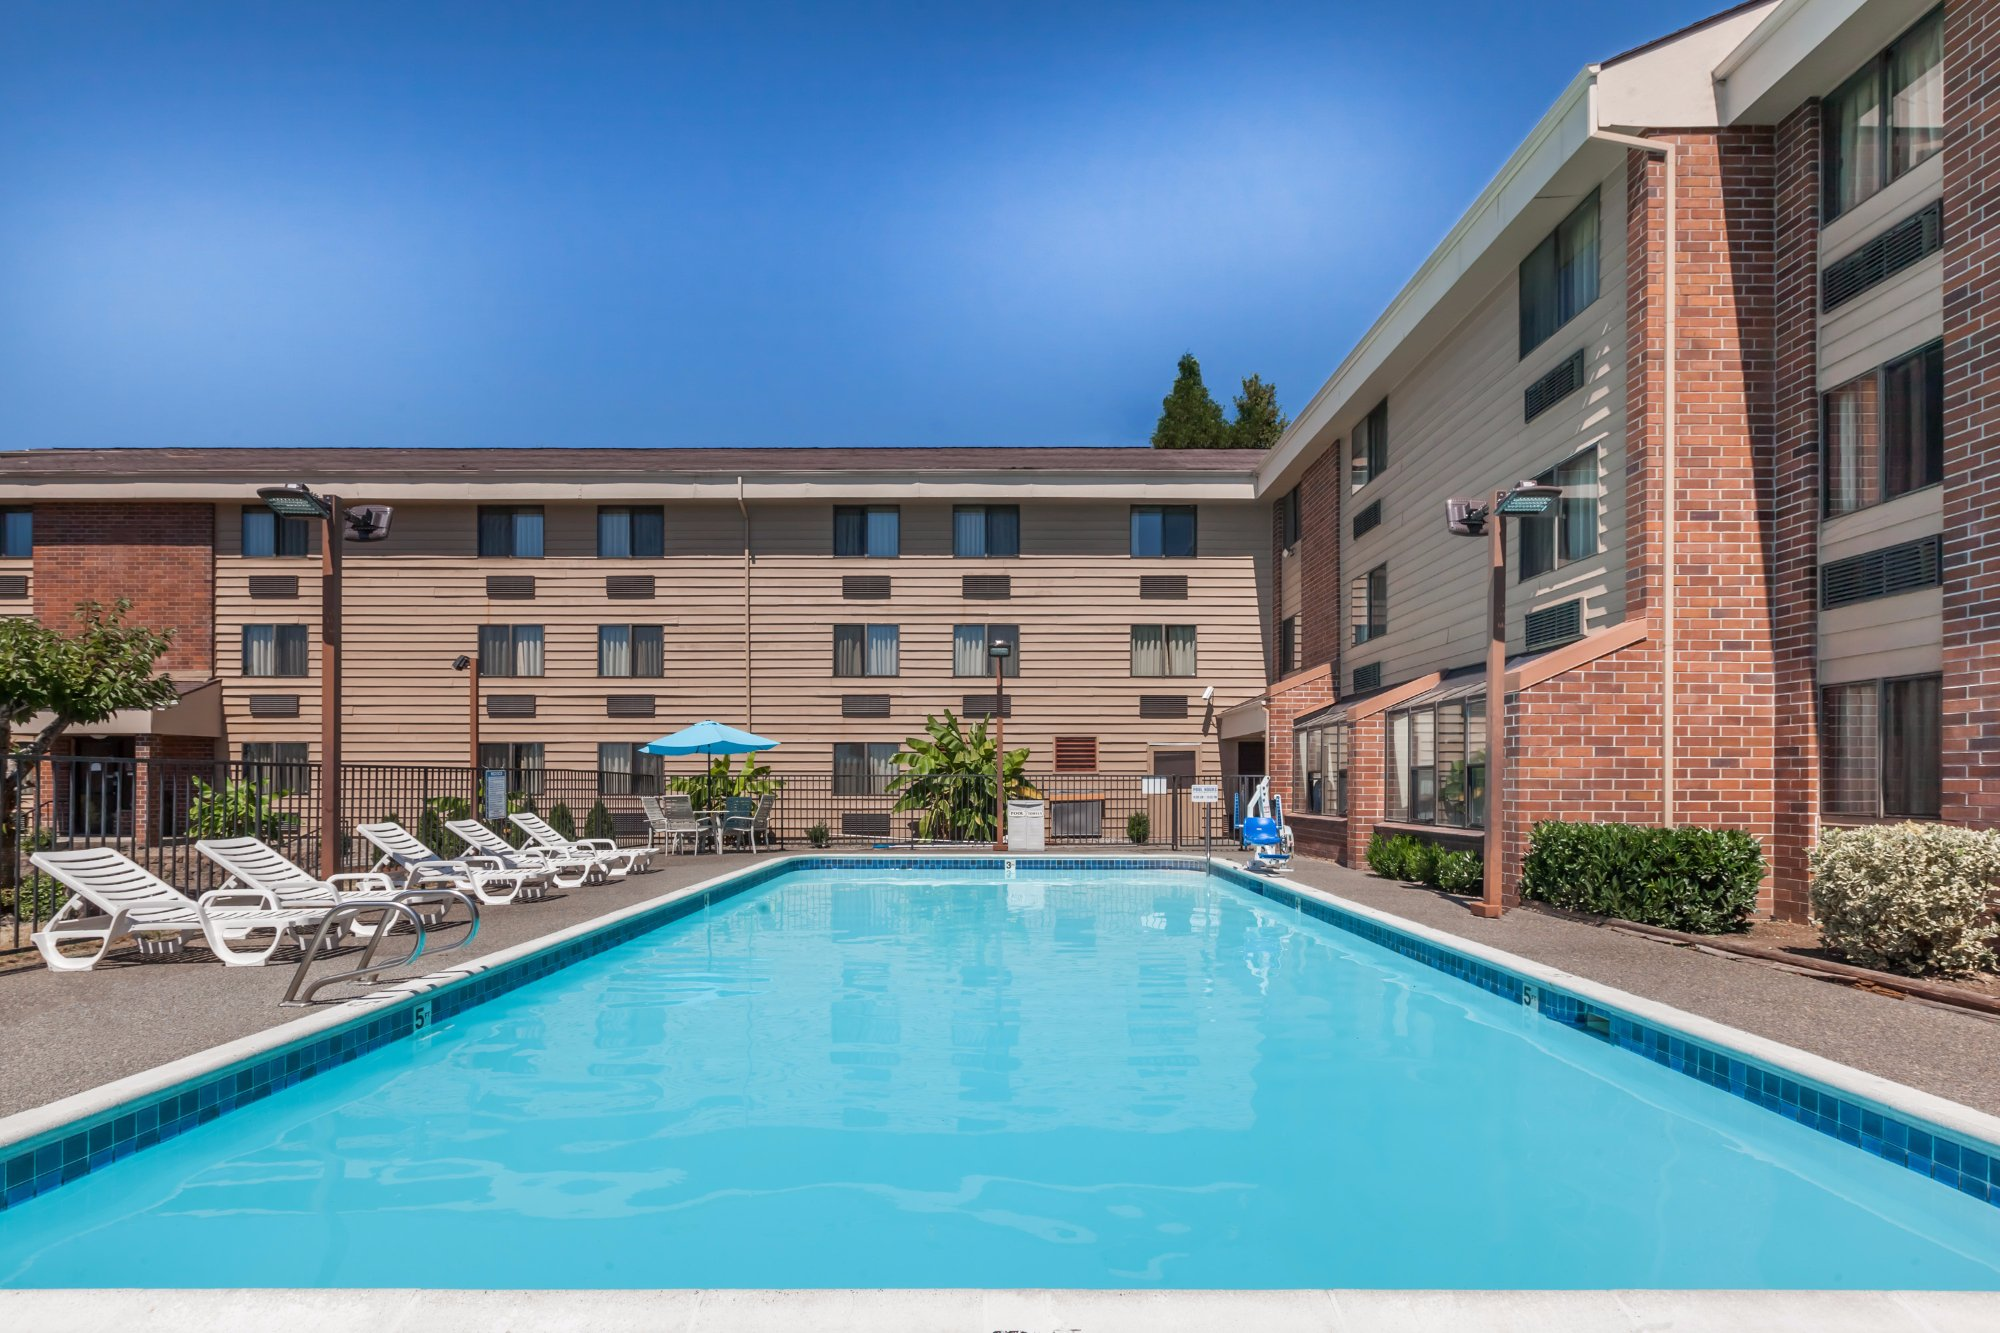 Days Inn Clackamas Portland